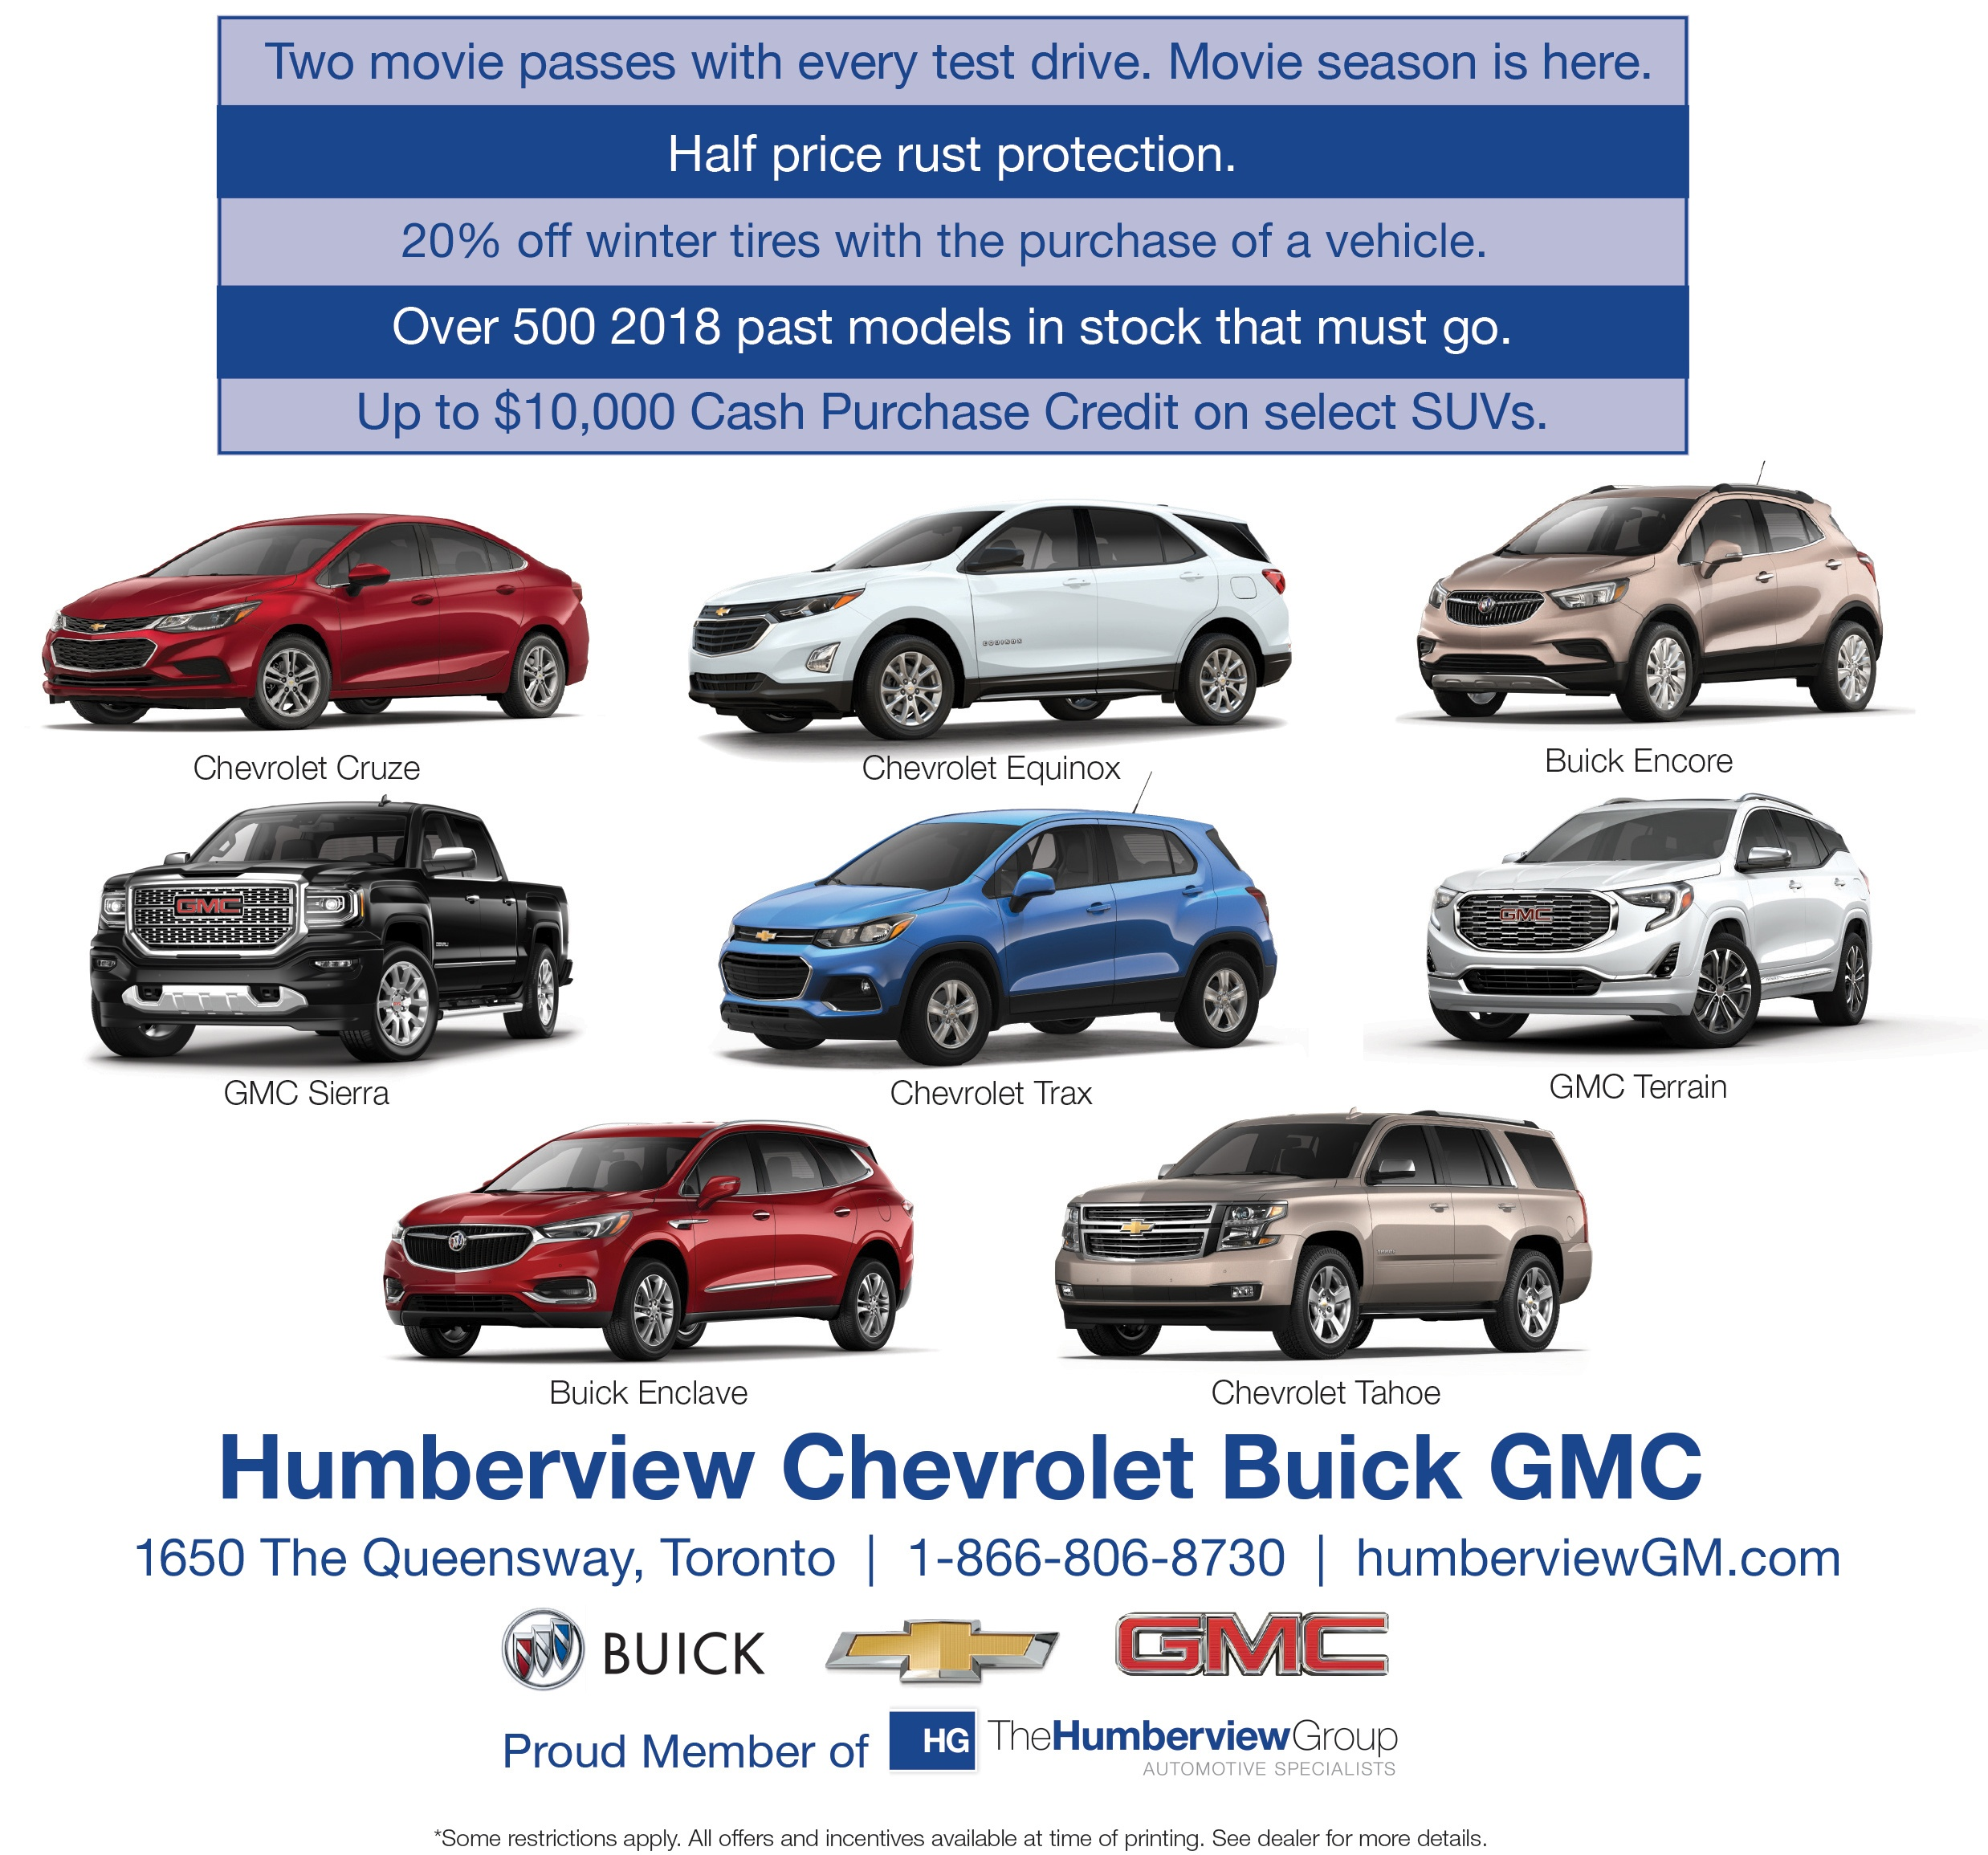 Humberview Chevrolet Buick GMC in Etobicoke, ON